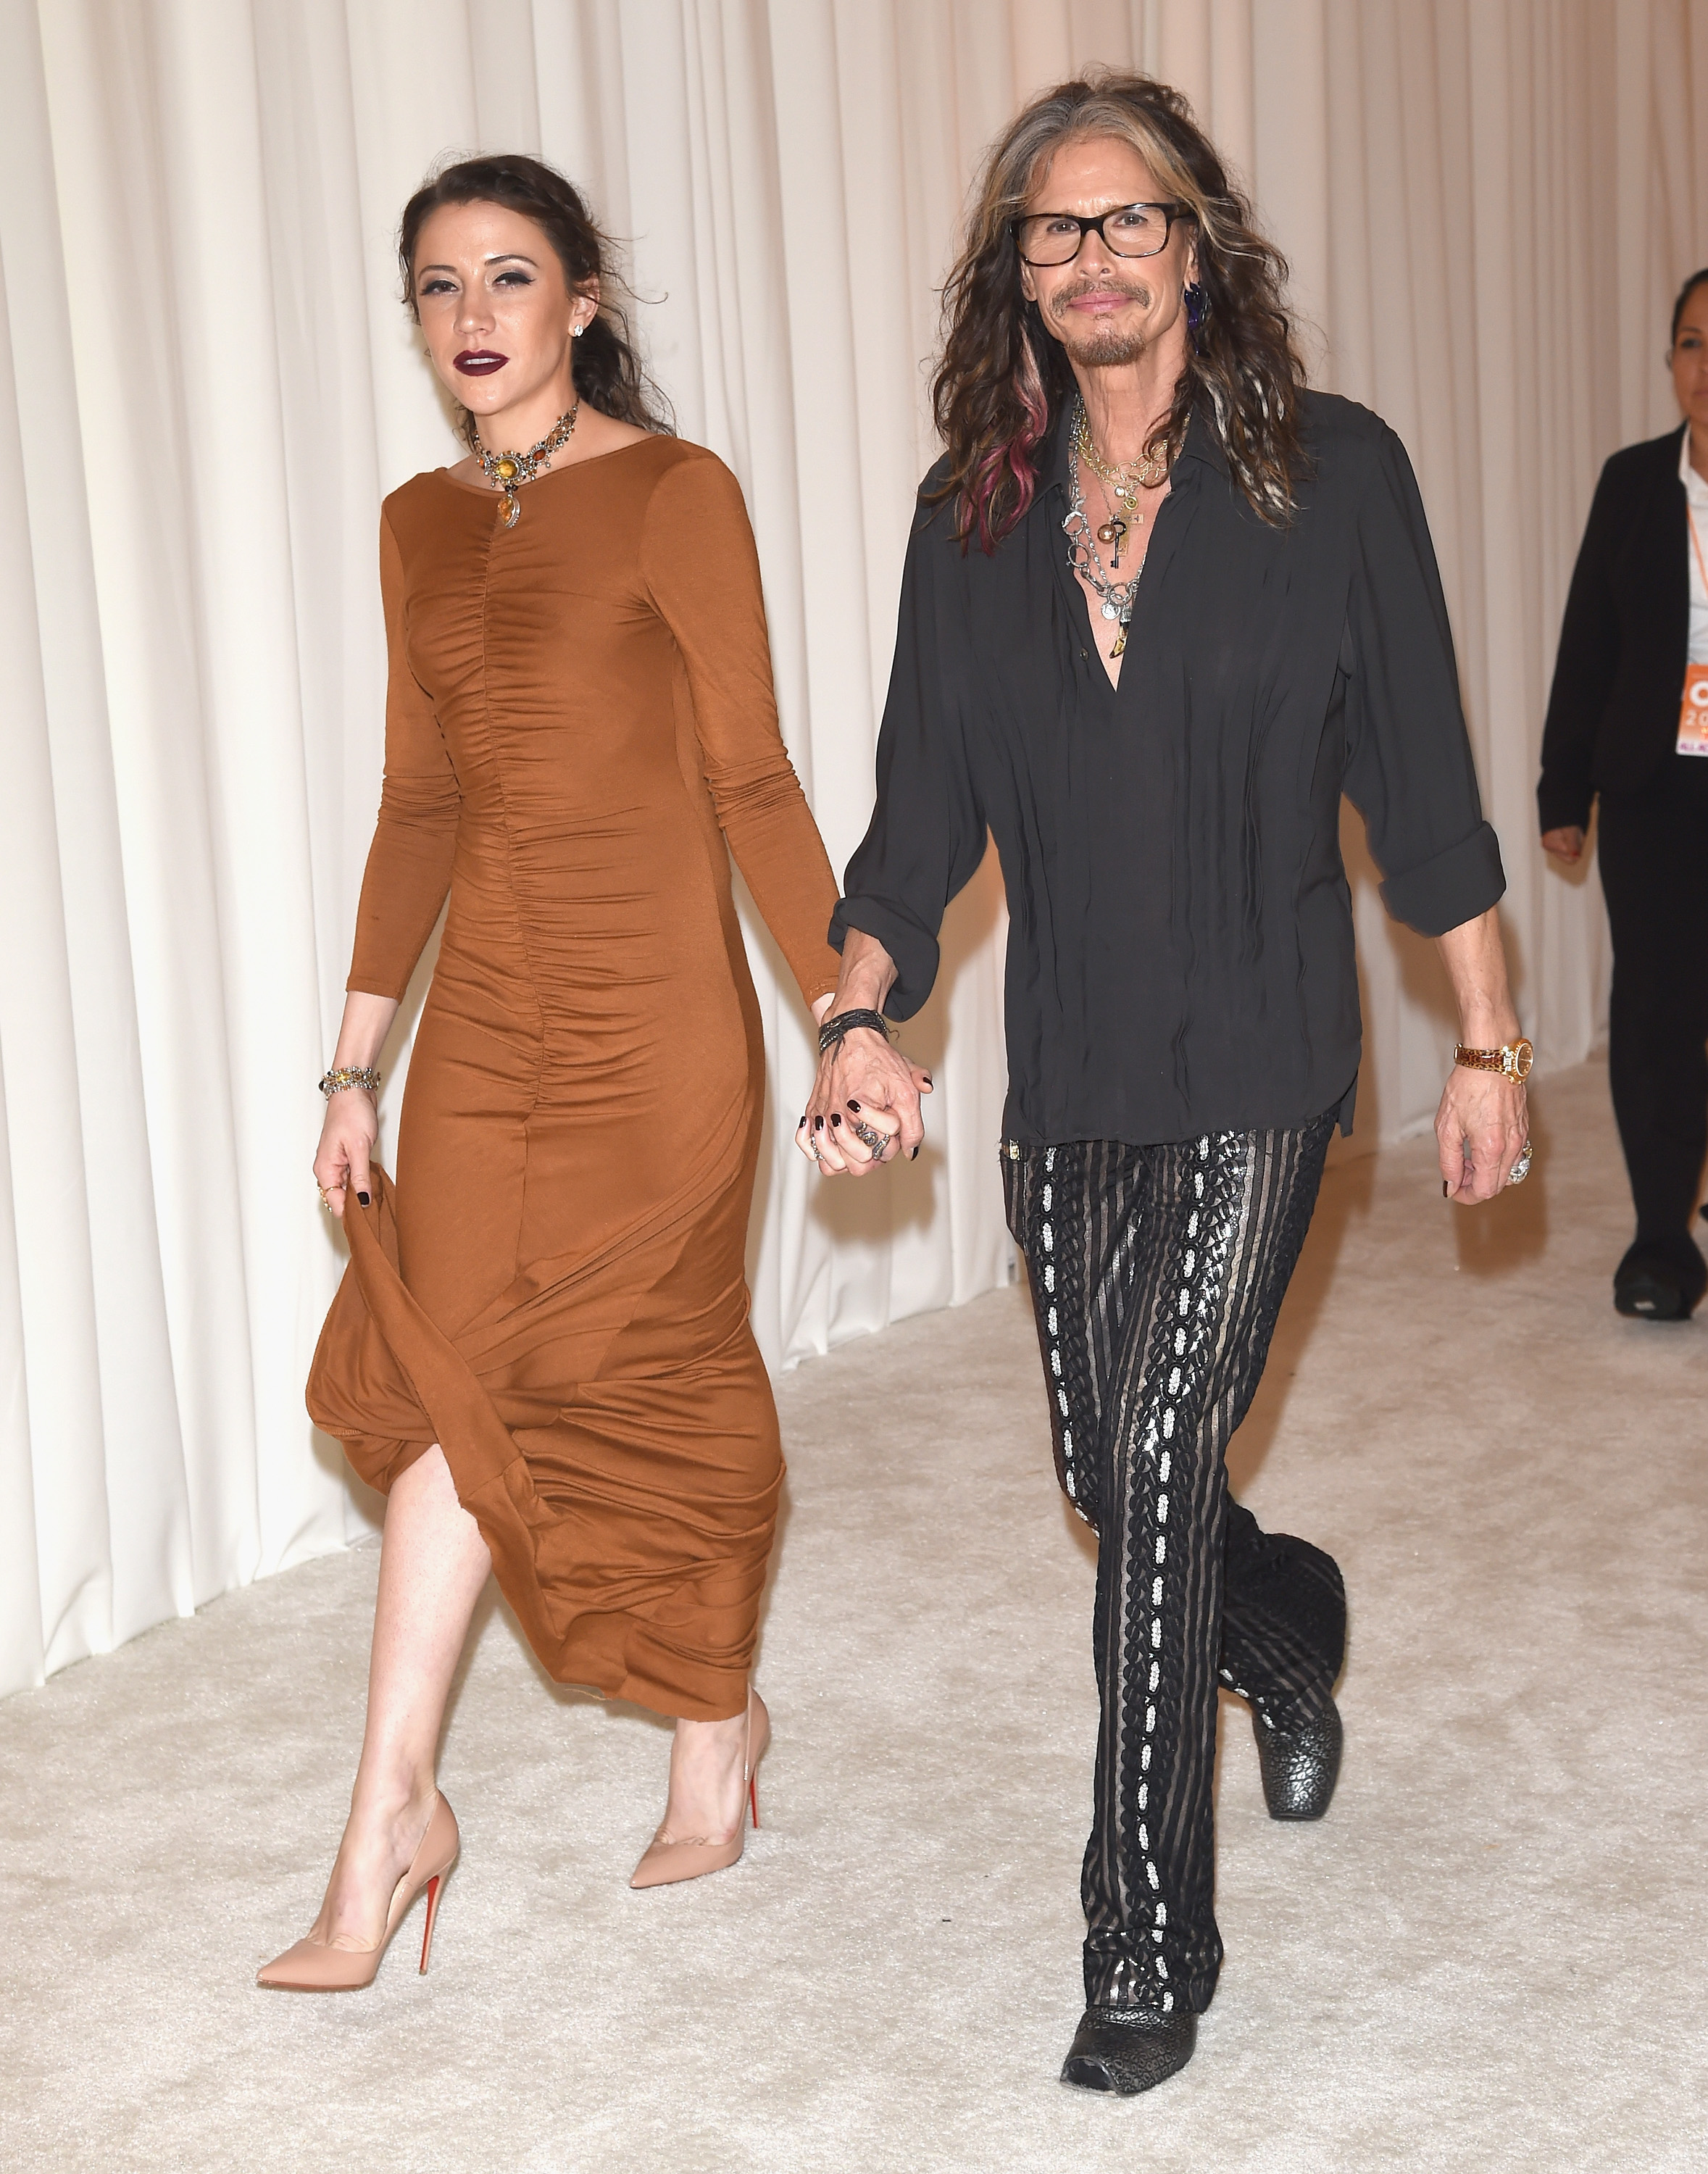 Steven Tyler is reportedly living with his much younger assistant